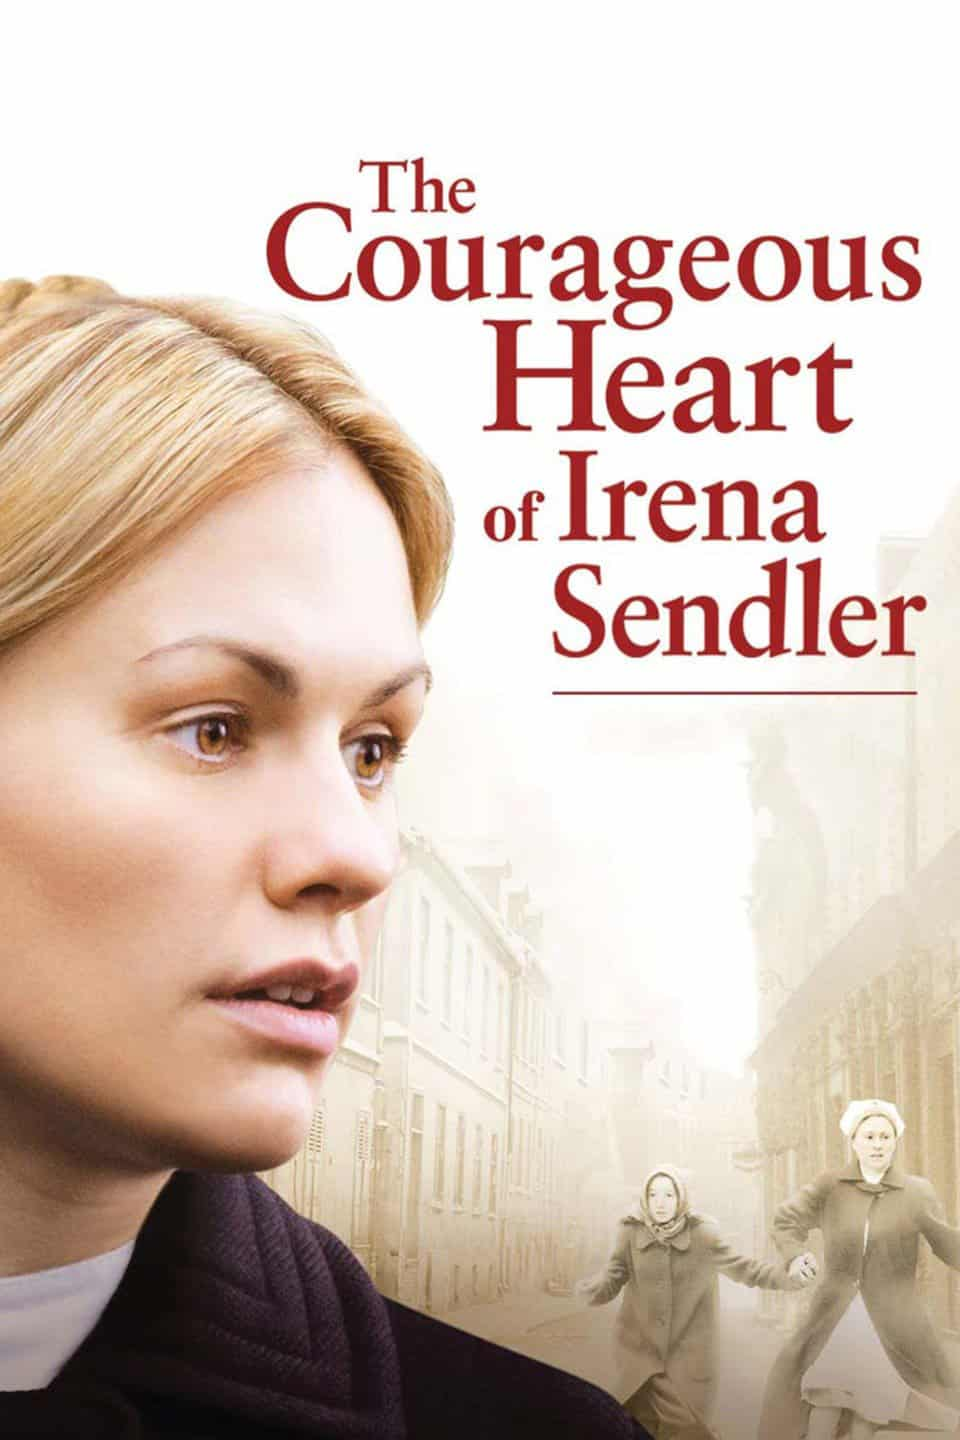 The Courageous Heart of Irena Sendler, 2009